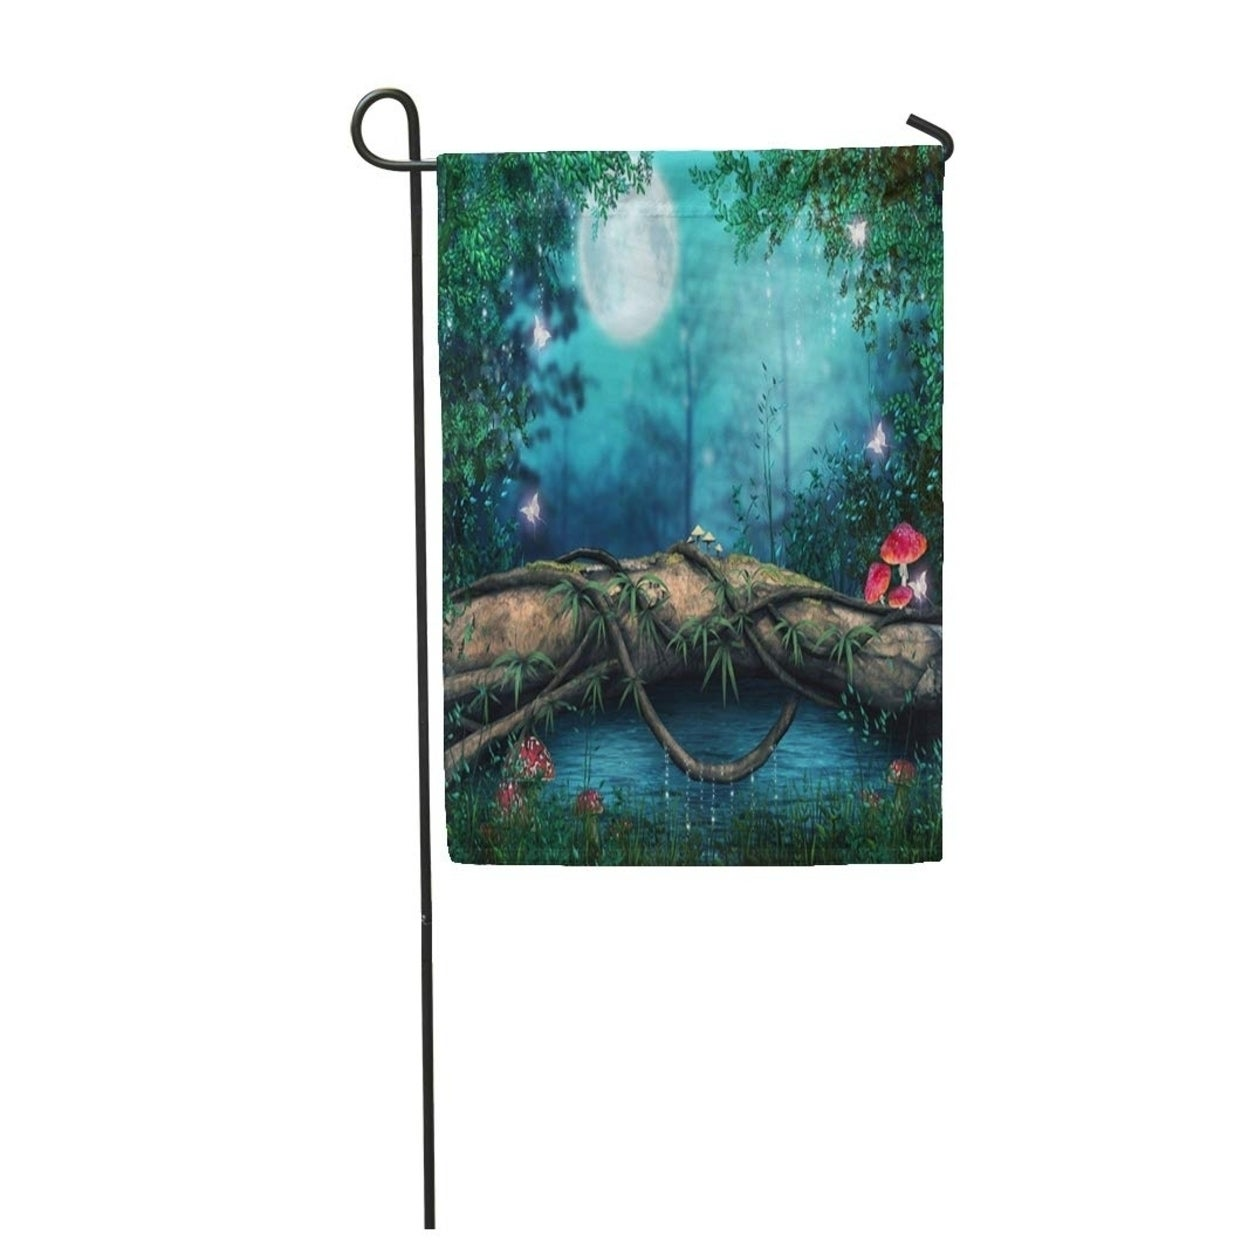 Forest Tree Log By An Enchanted Pond Fantasy Fairytale Magic Garden Flag Decorative Flag House Banner 28x40 Inch On Sale Overstock 31367657